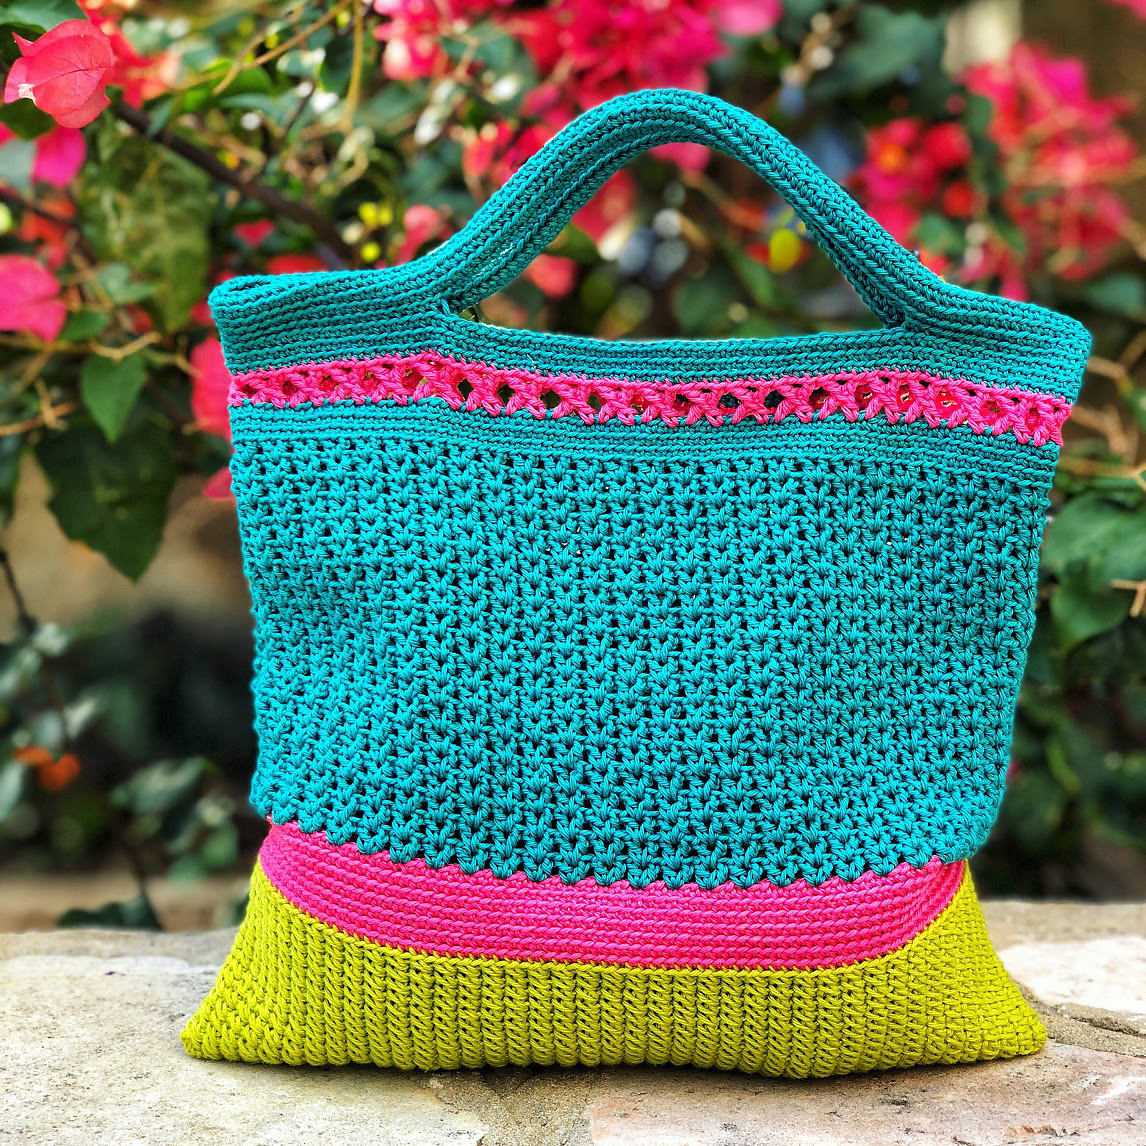 Crochet a Cute and Colorful Orchid Bag Tote, Designed By Anya Goldblatt